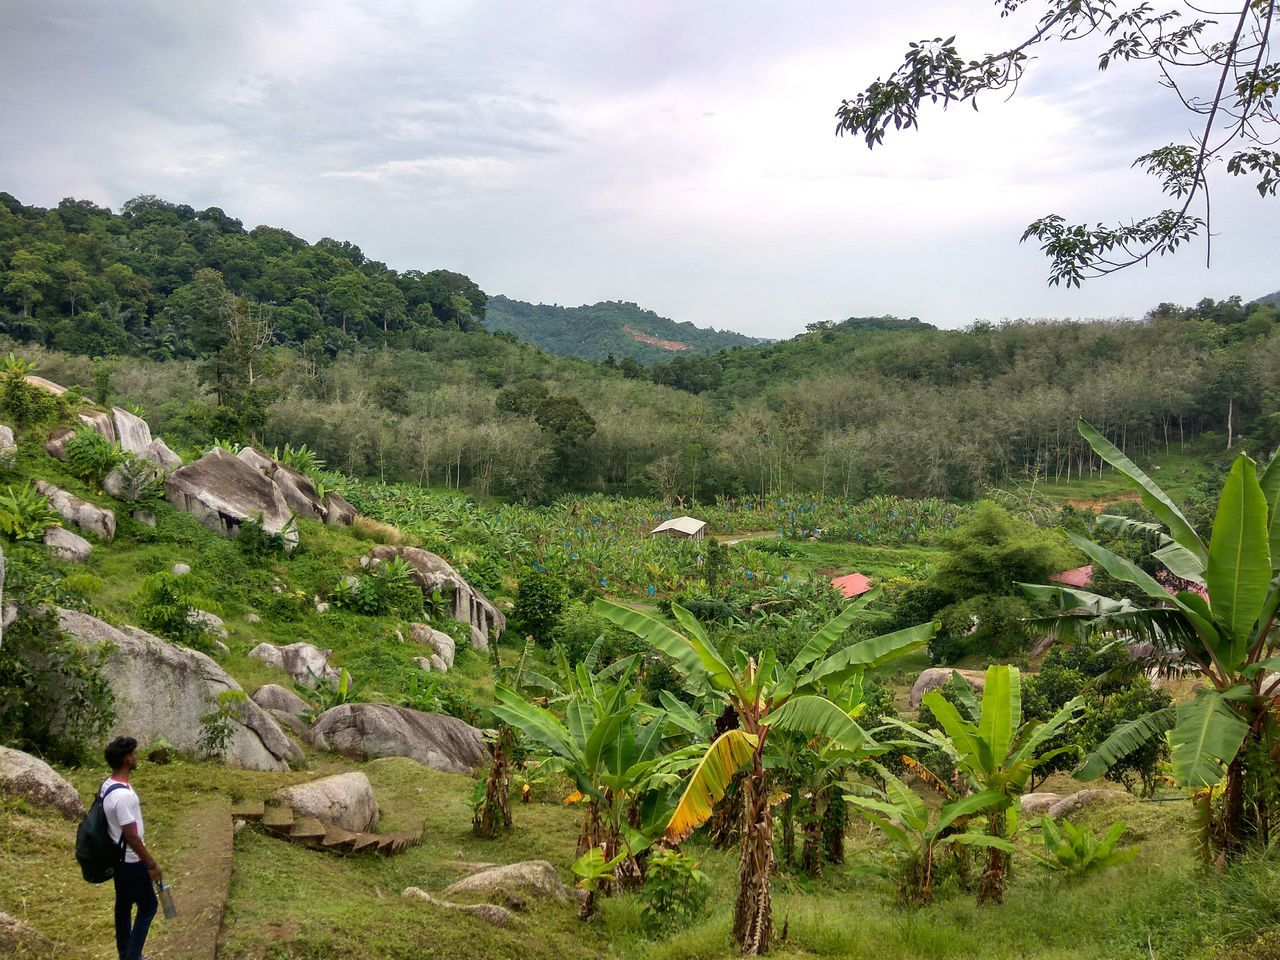 Country Living Field Landscape Rural Scene Tree Beauty In Nature Farmer Real People Nature Plant Outdoors Day Growth Country Living 🚜🌾🌽 Banana Tree Malaysia Scenery Malacca Malaysia Truly Asia Photooftheday Photography Aroundtheworld Mother Nature Is Amazing Mothernature Beautiful Nature Rocky Hills Caves Neighborhood Map